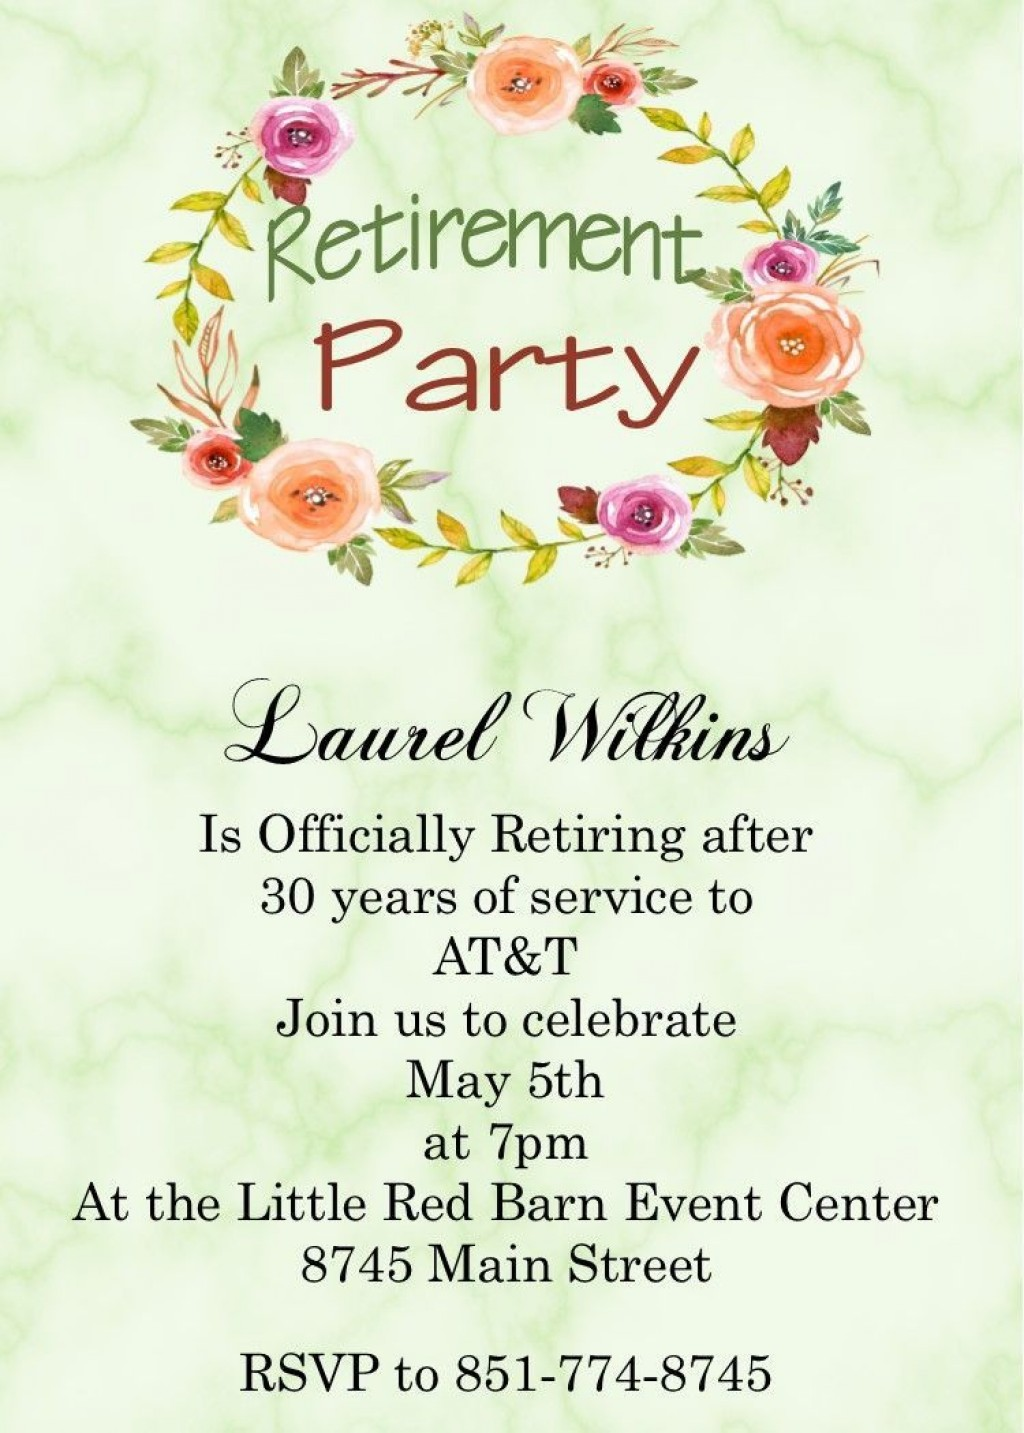 003 Staggering Retirement Party Invitation Template Sample  Templates For Free Nurse M WordLarge